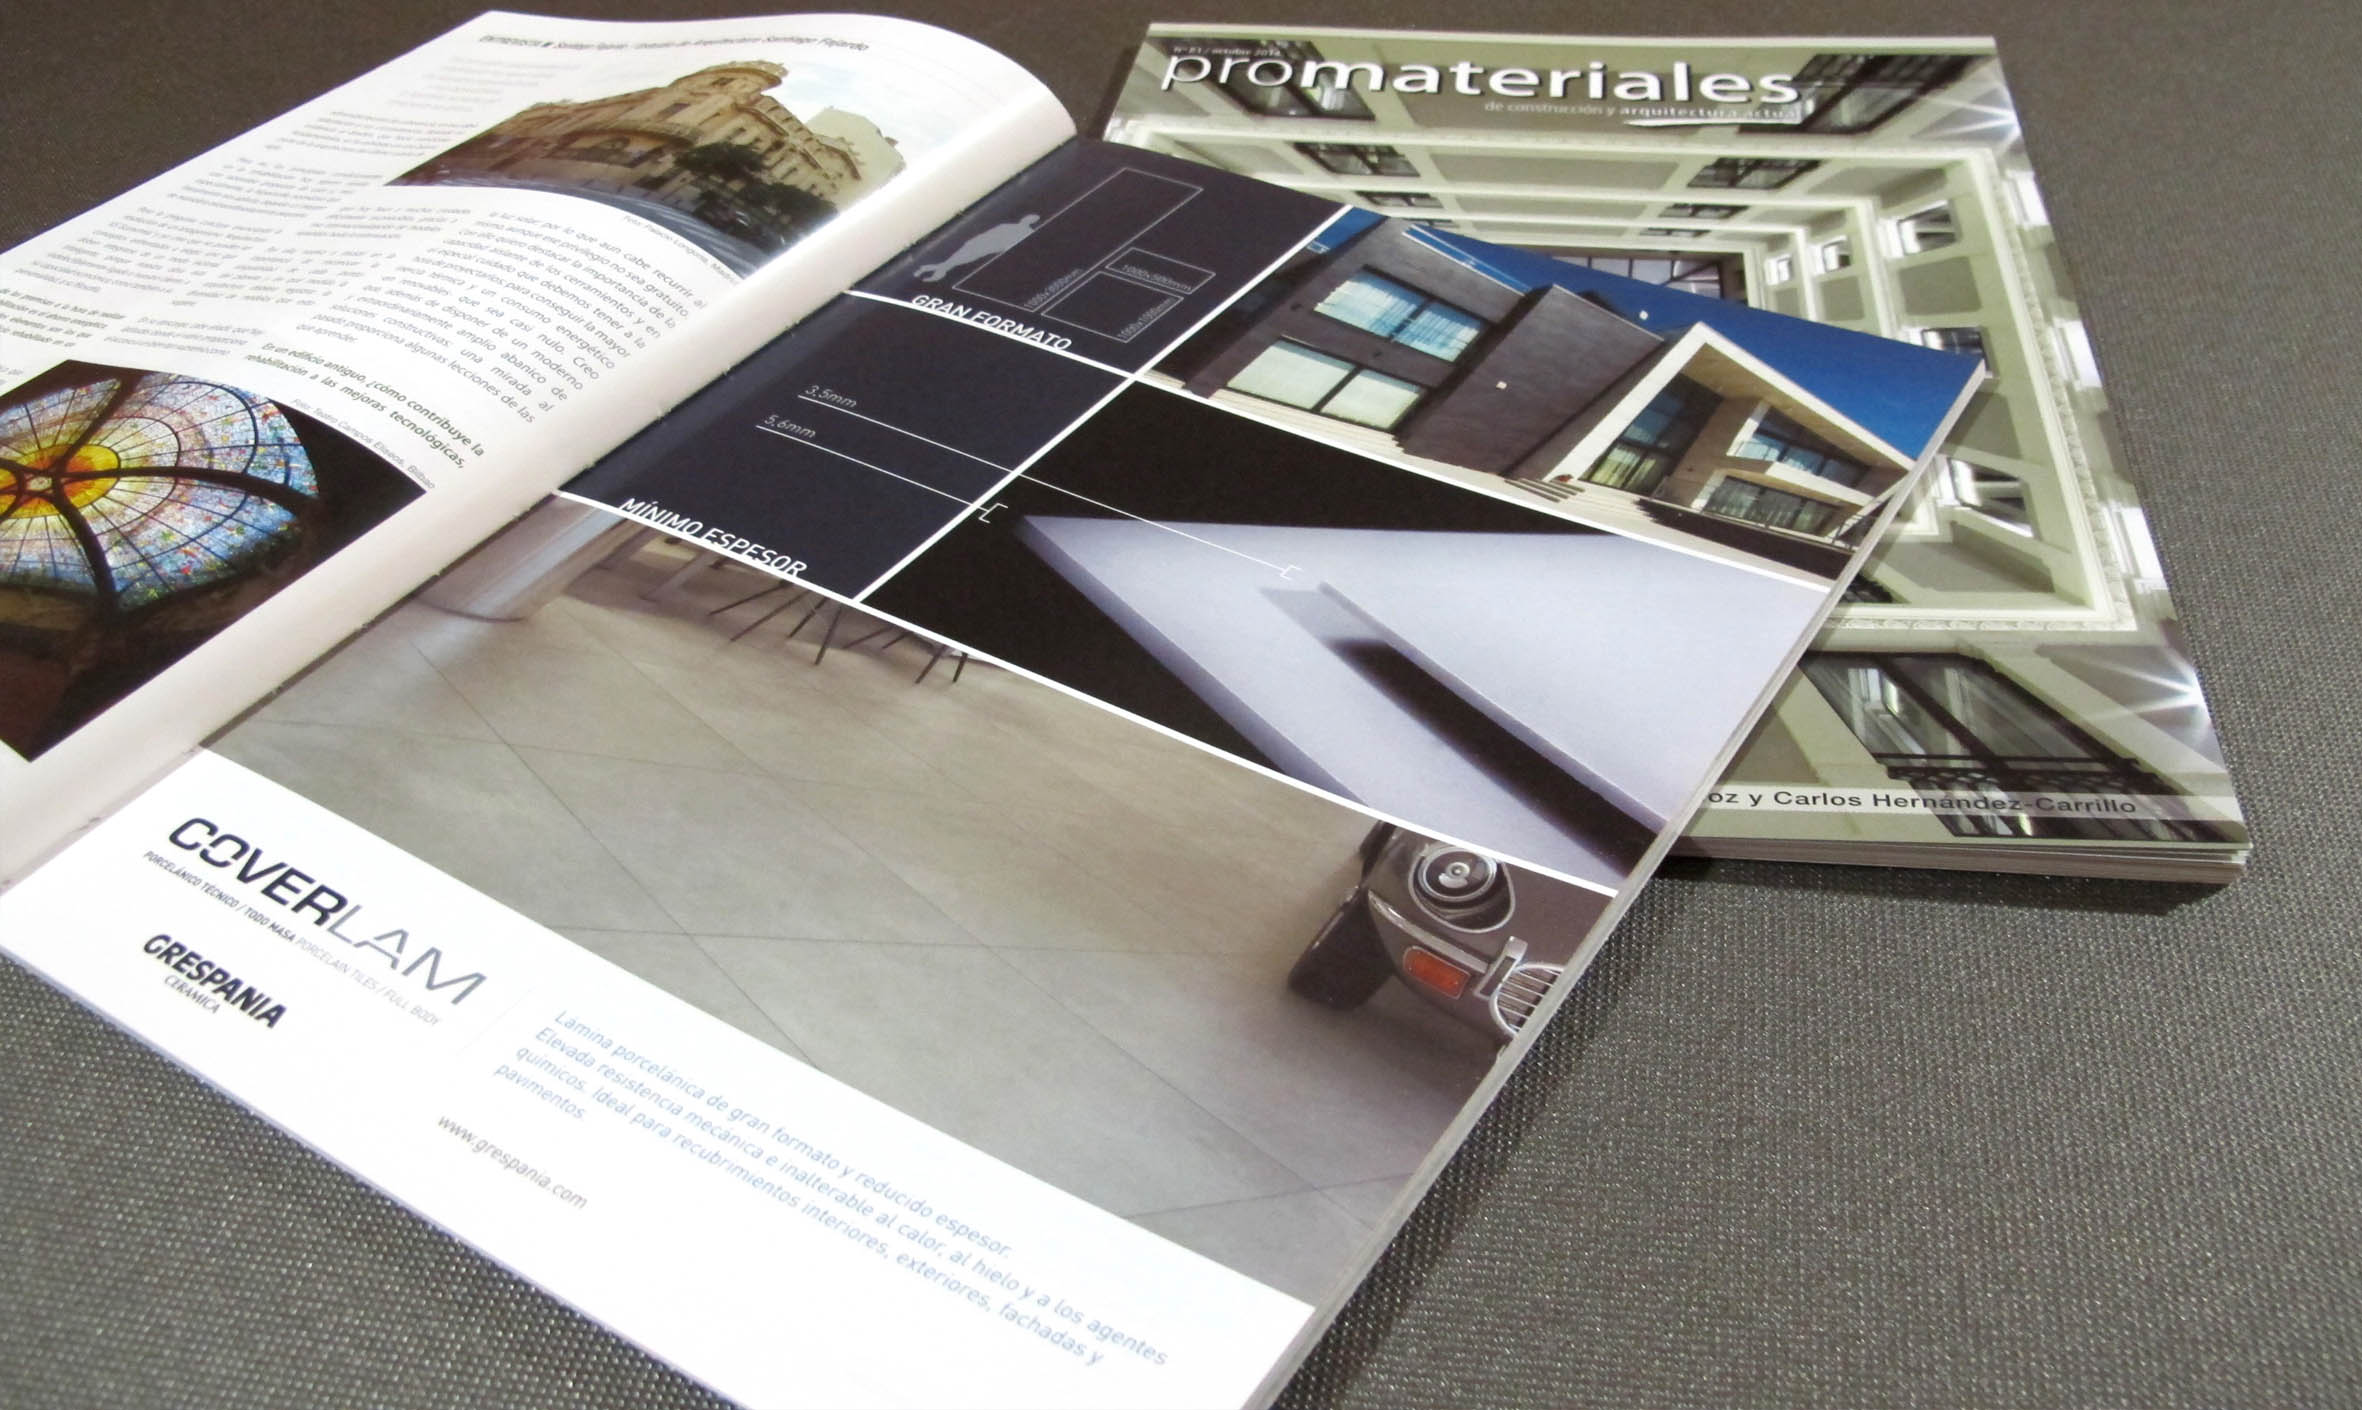 PROMATERIALES Nº 81 Oct 2014